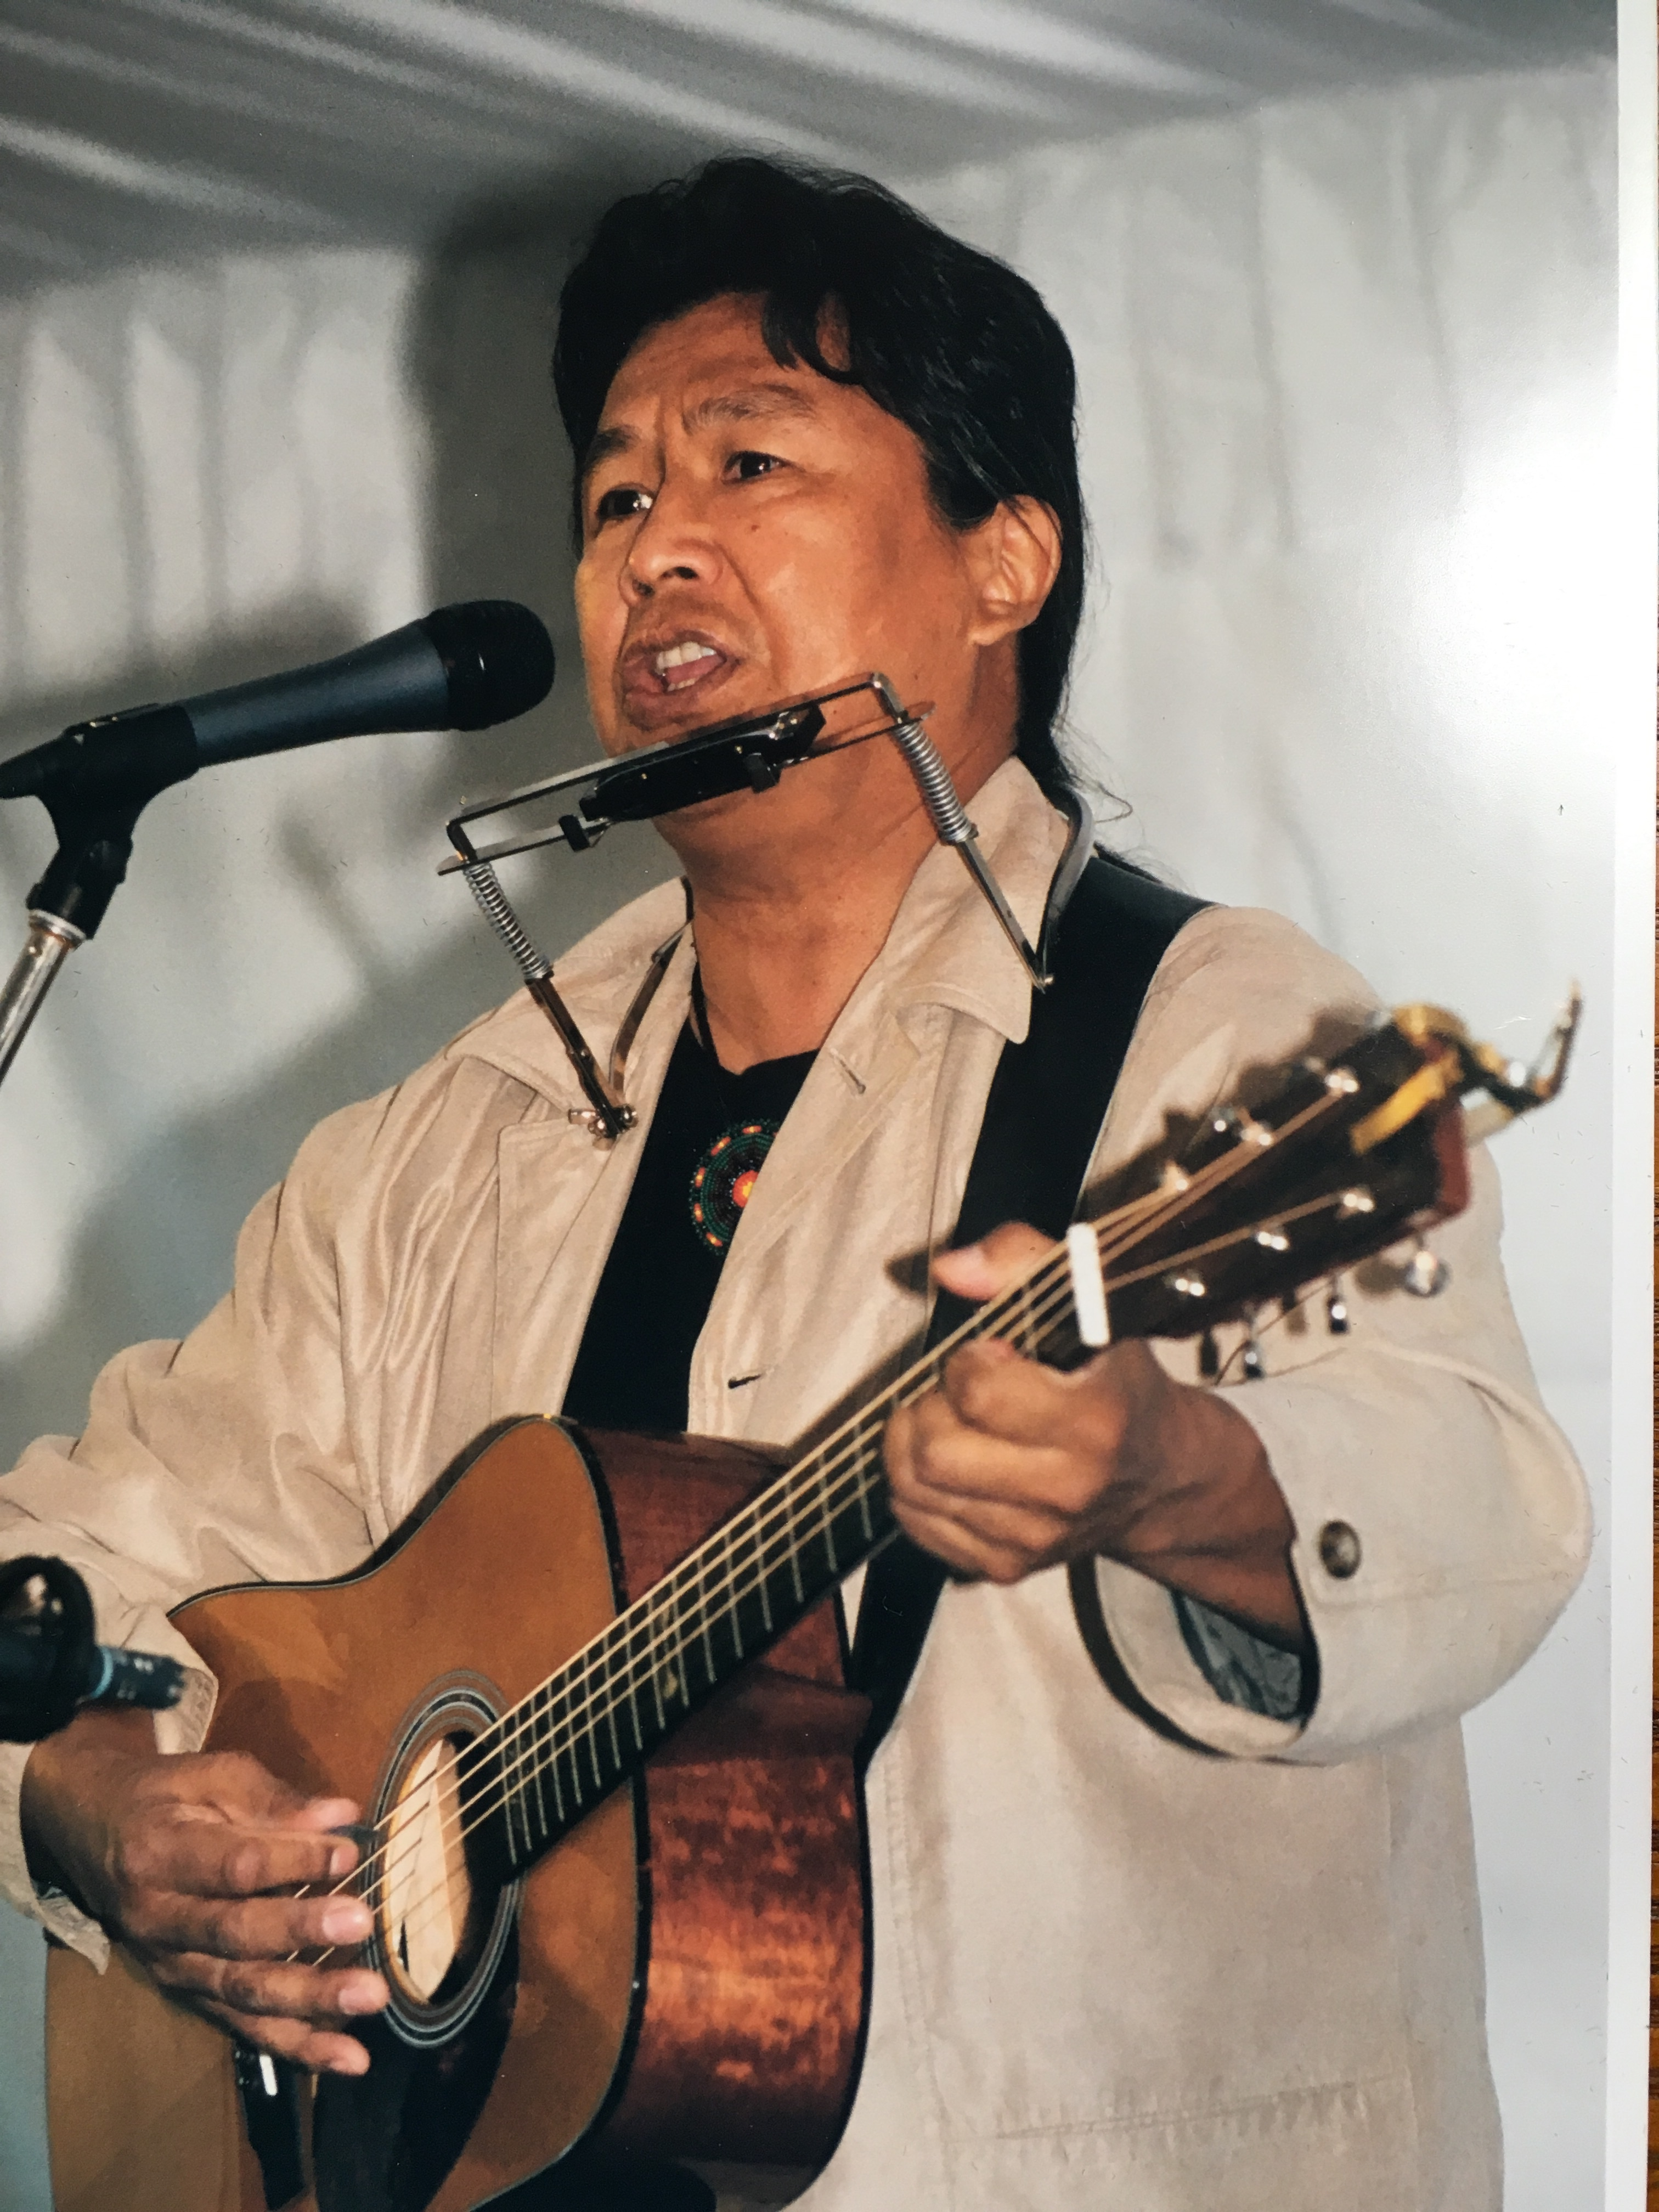 36. Stephen Kakfwi Dene Politican Singer and Statesman He was Radical but he was Right